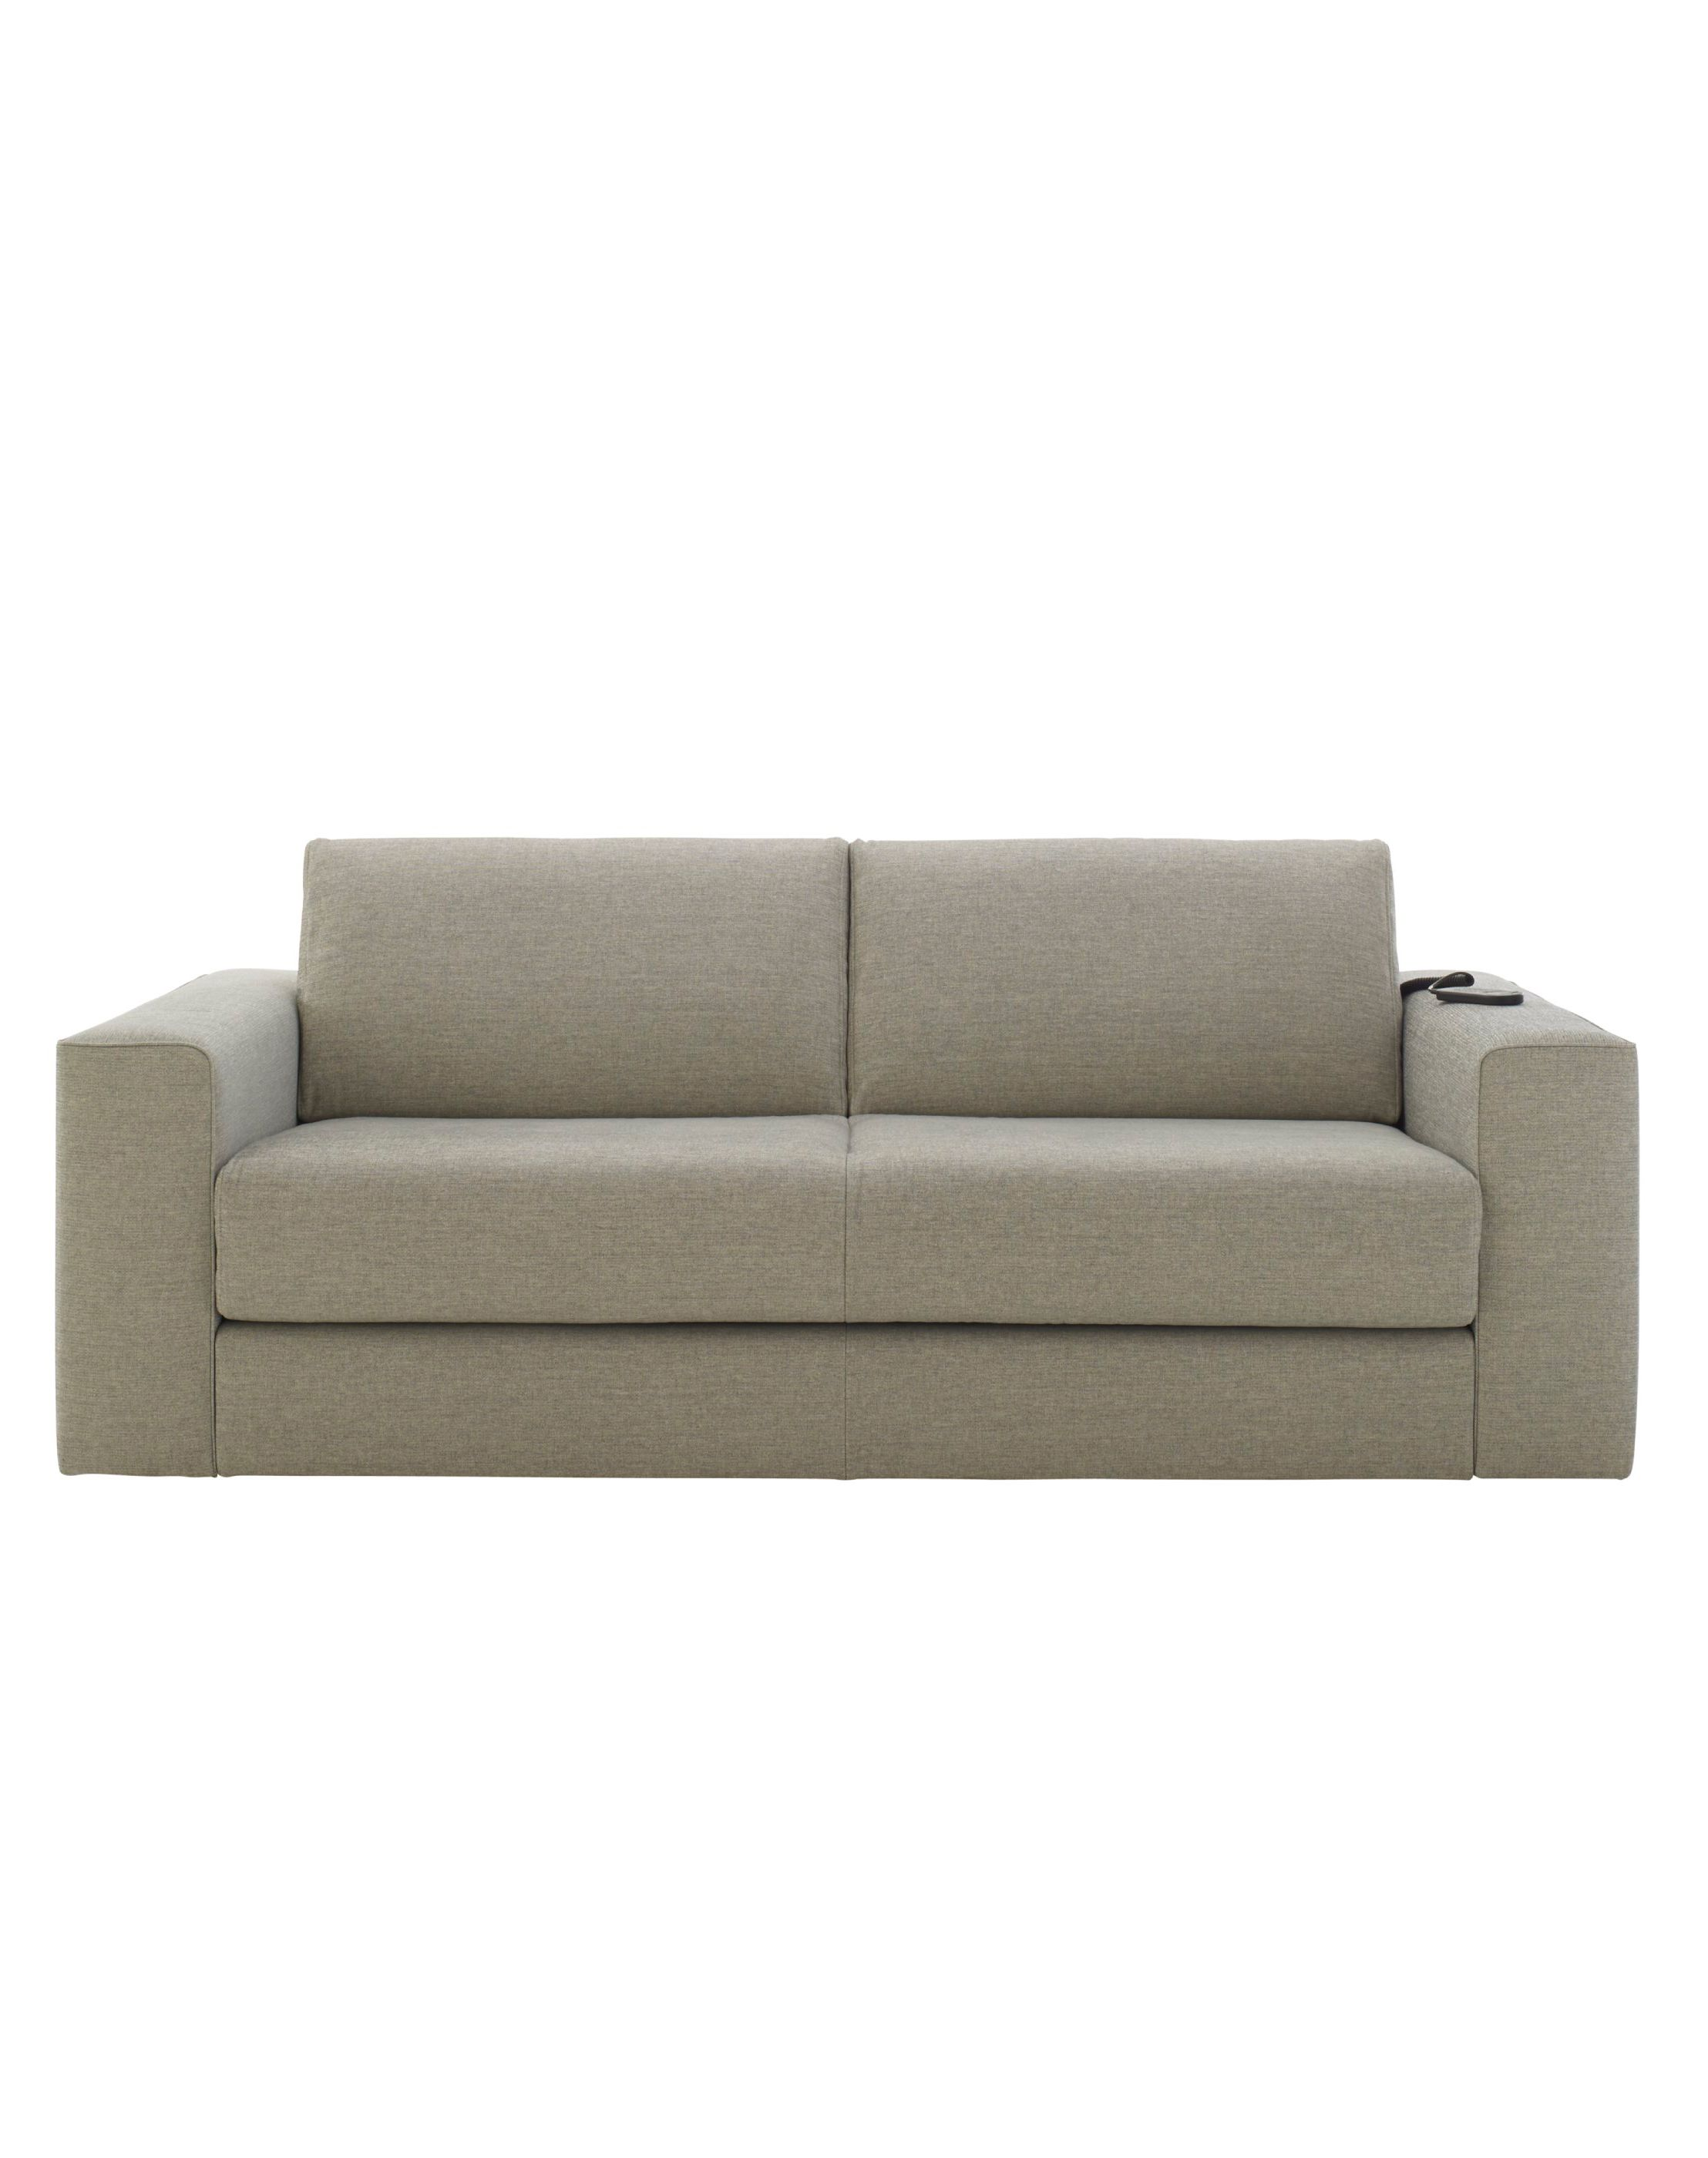 Do Not Disturb Electric Sofabed Designed For Ligne Roset Various Leather Fabric Options Available At Linea Inc Modern Modern Sofa Ligne Roset Sofa Bed